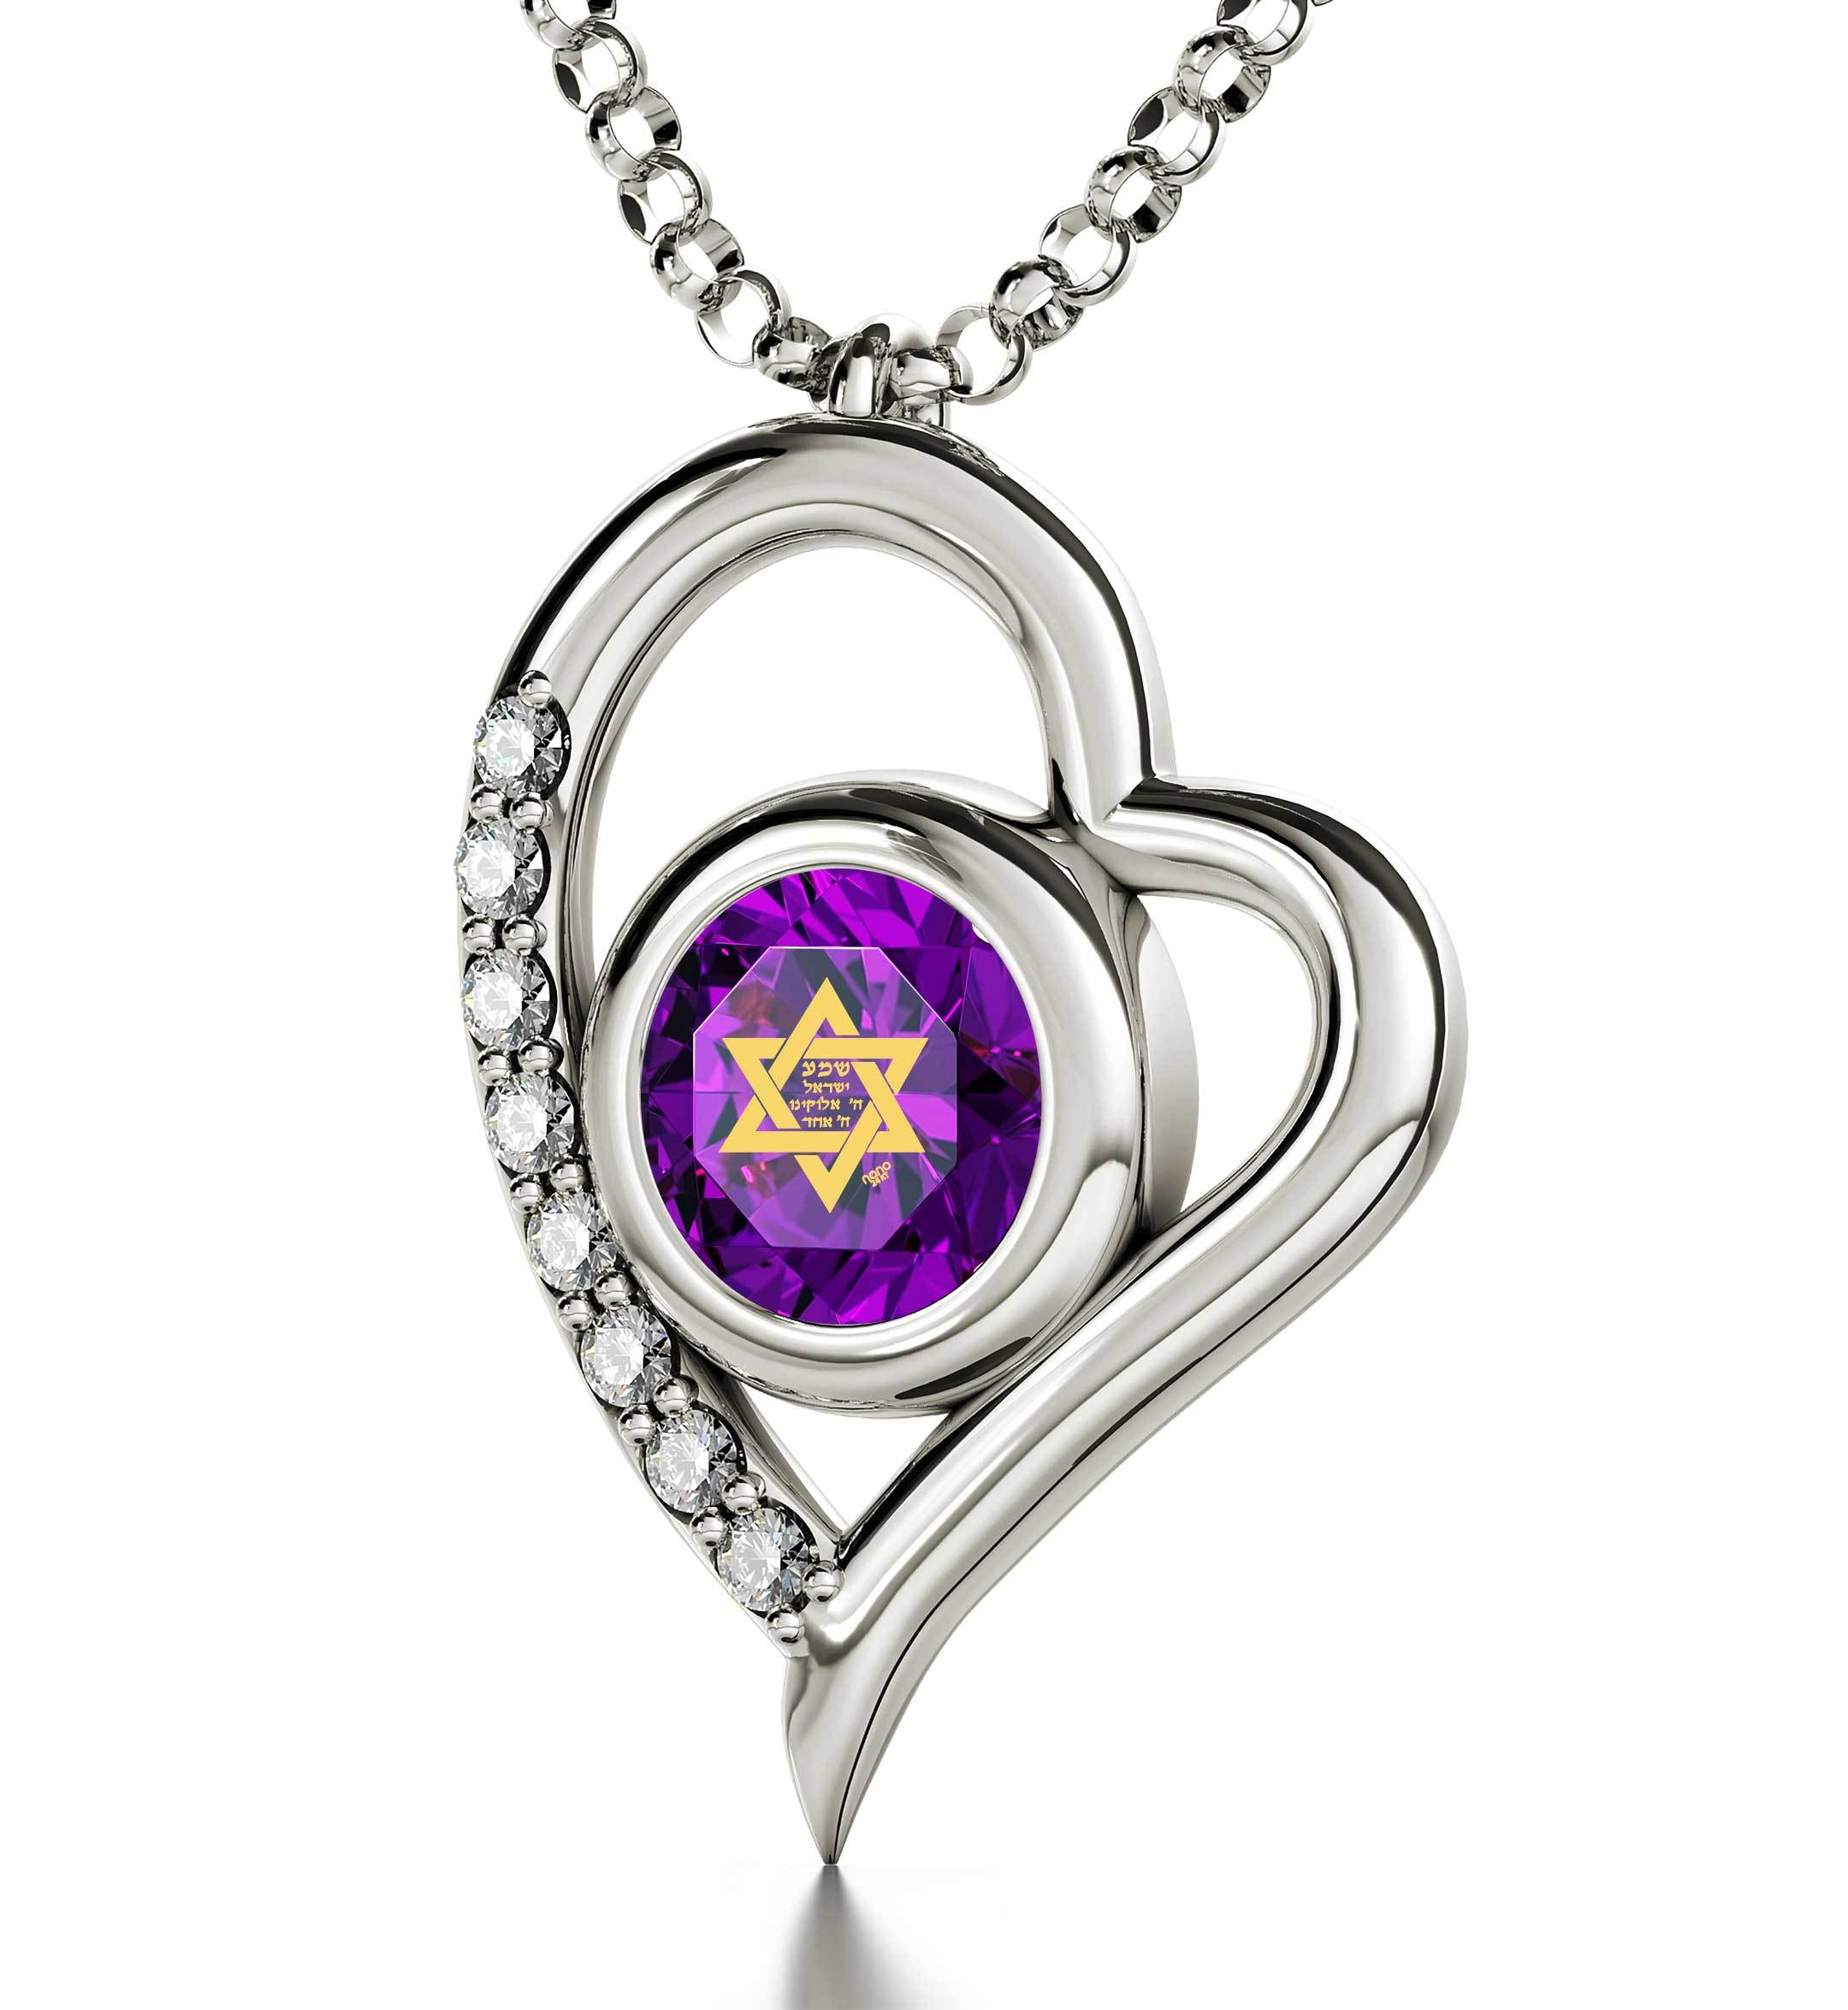 """Shema Yisrael"" Engraved in 24k, Jewish Necklace with Real Gold Pendant, Israeli Jewelry Designer, Nano Jewelry"